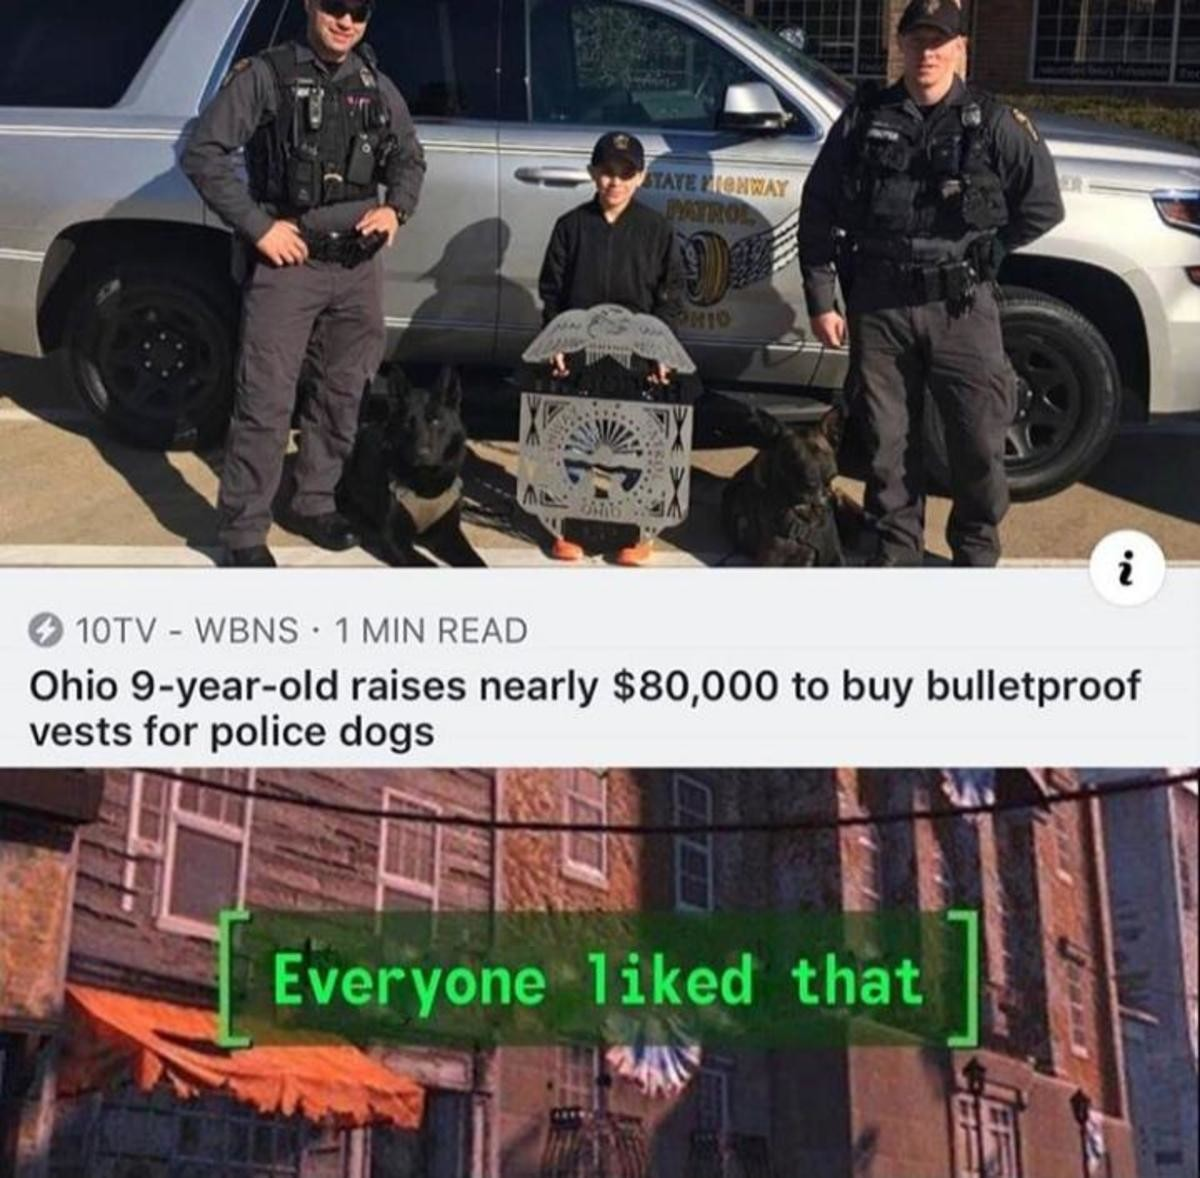 Armor puppers. Don't pet police dogs, it's for your own and your arm's good.. how tf does 9yo kid raise 80k?